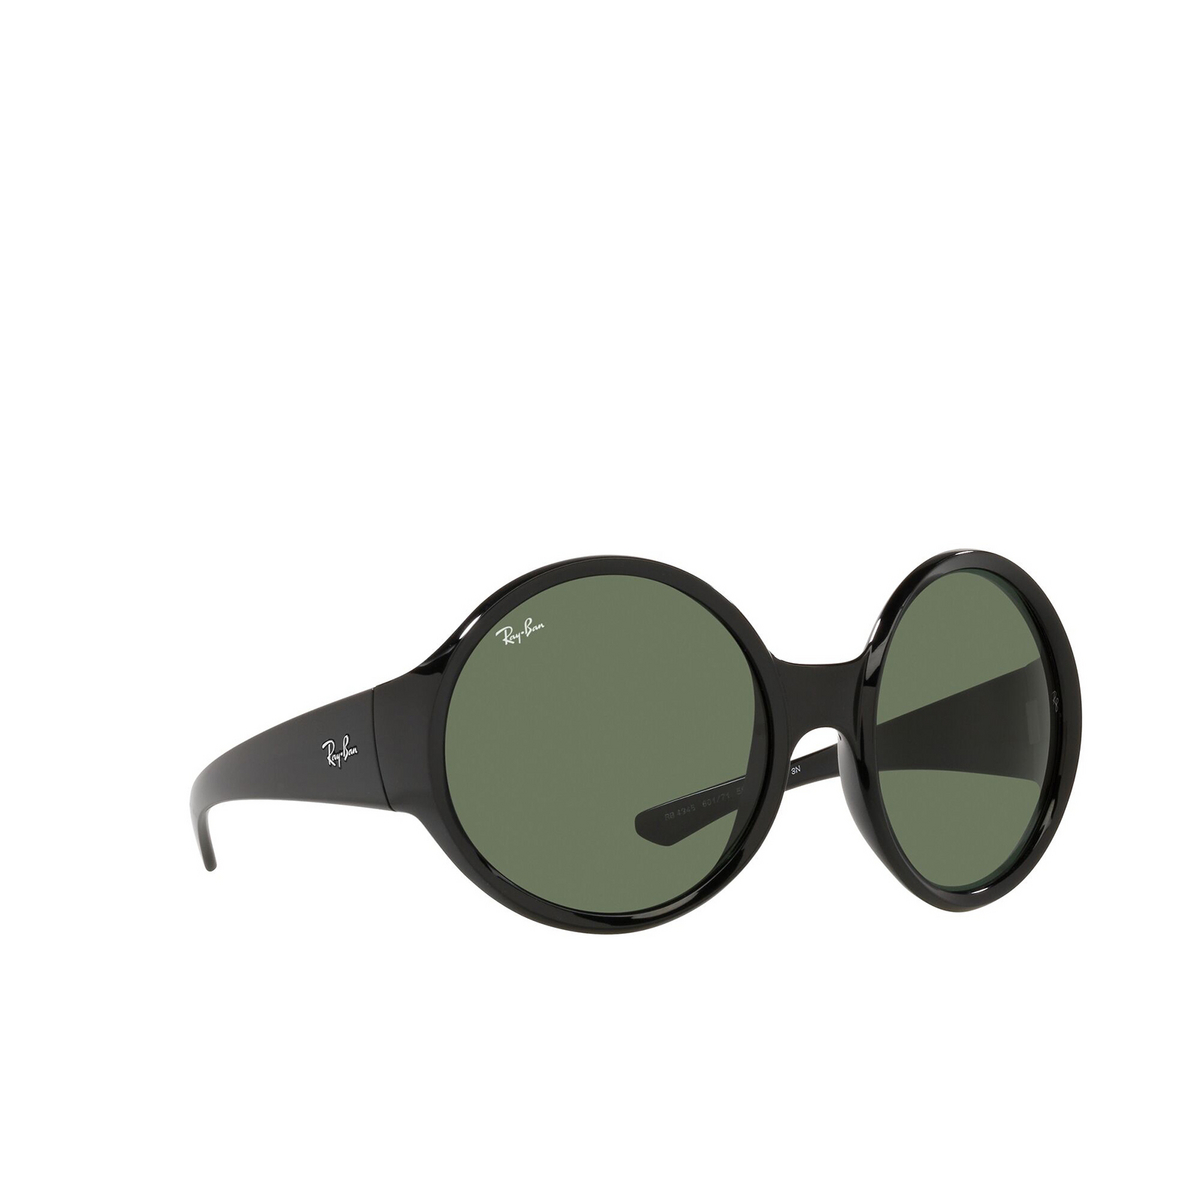 Ray-Ban® Round Sunglasses: RB4345 color Black 601/71 - three-quarters view.